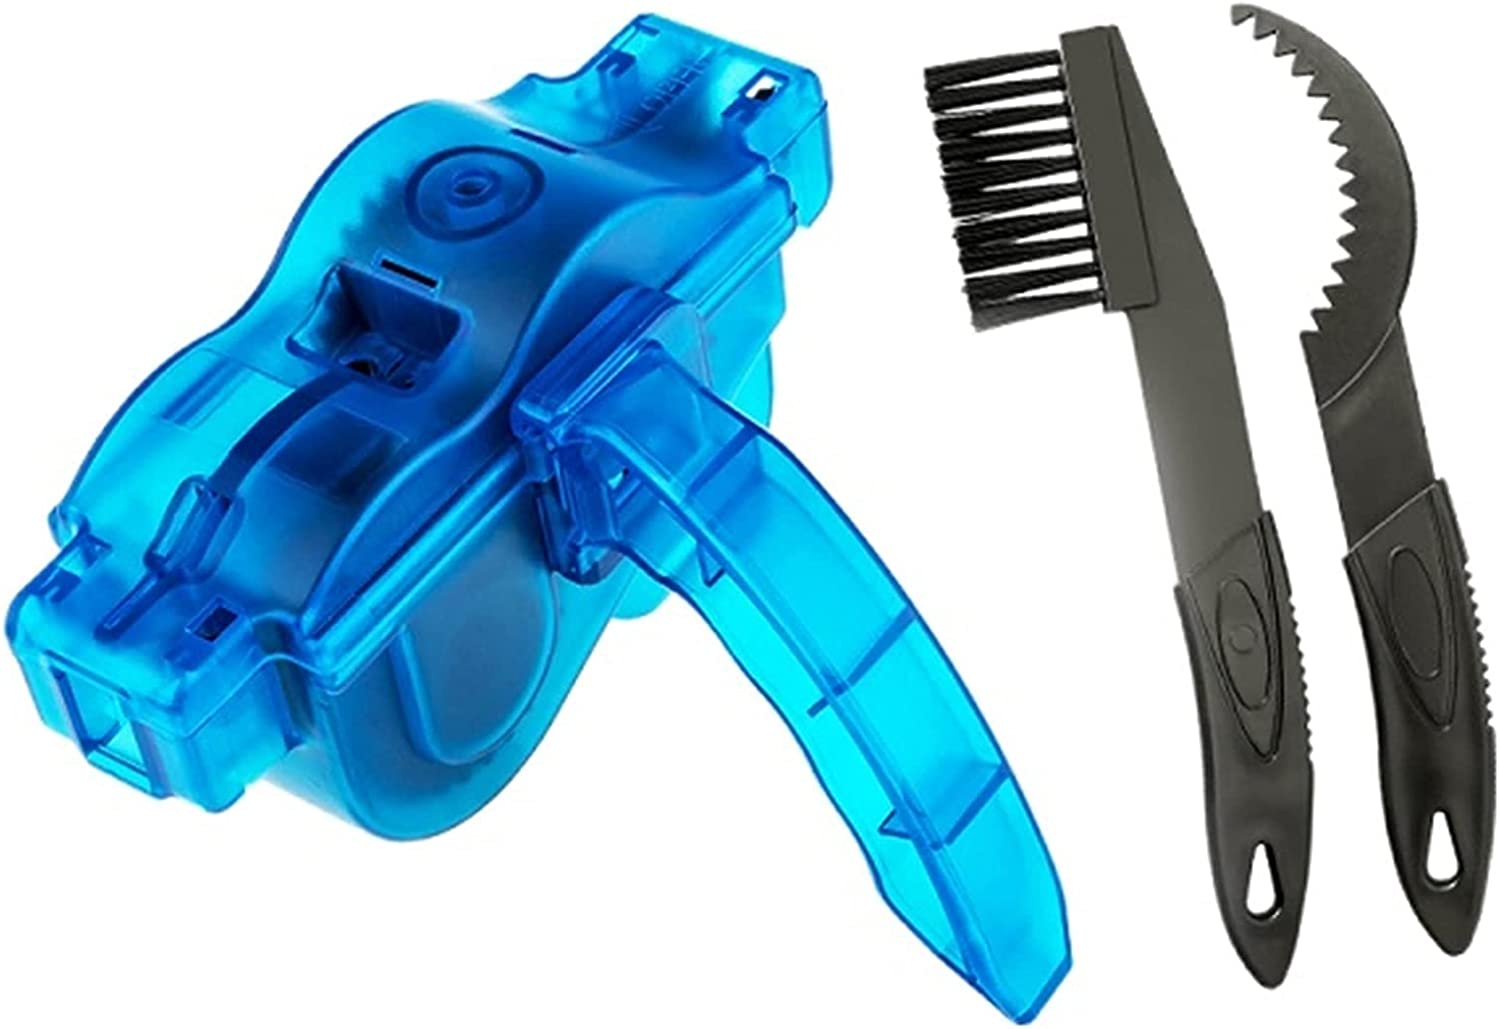 Sales CYHX Bicycle Chain Cleaner Fixed price for sale Bike Scrubber Brushes Wash Tool Moun